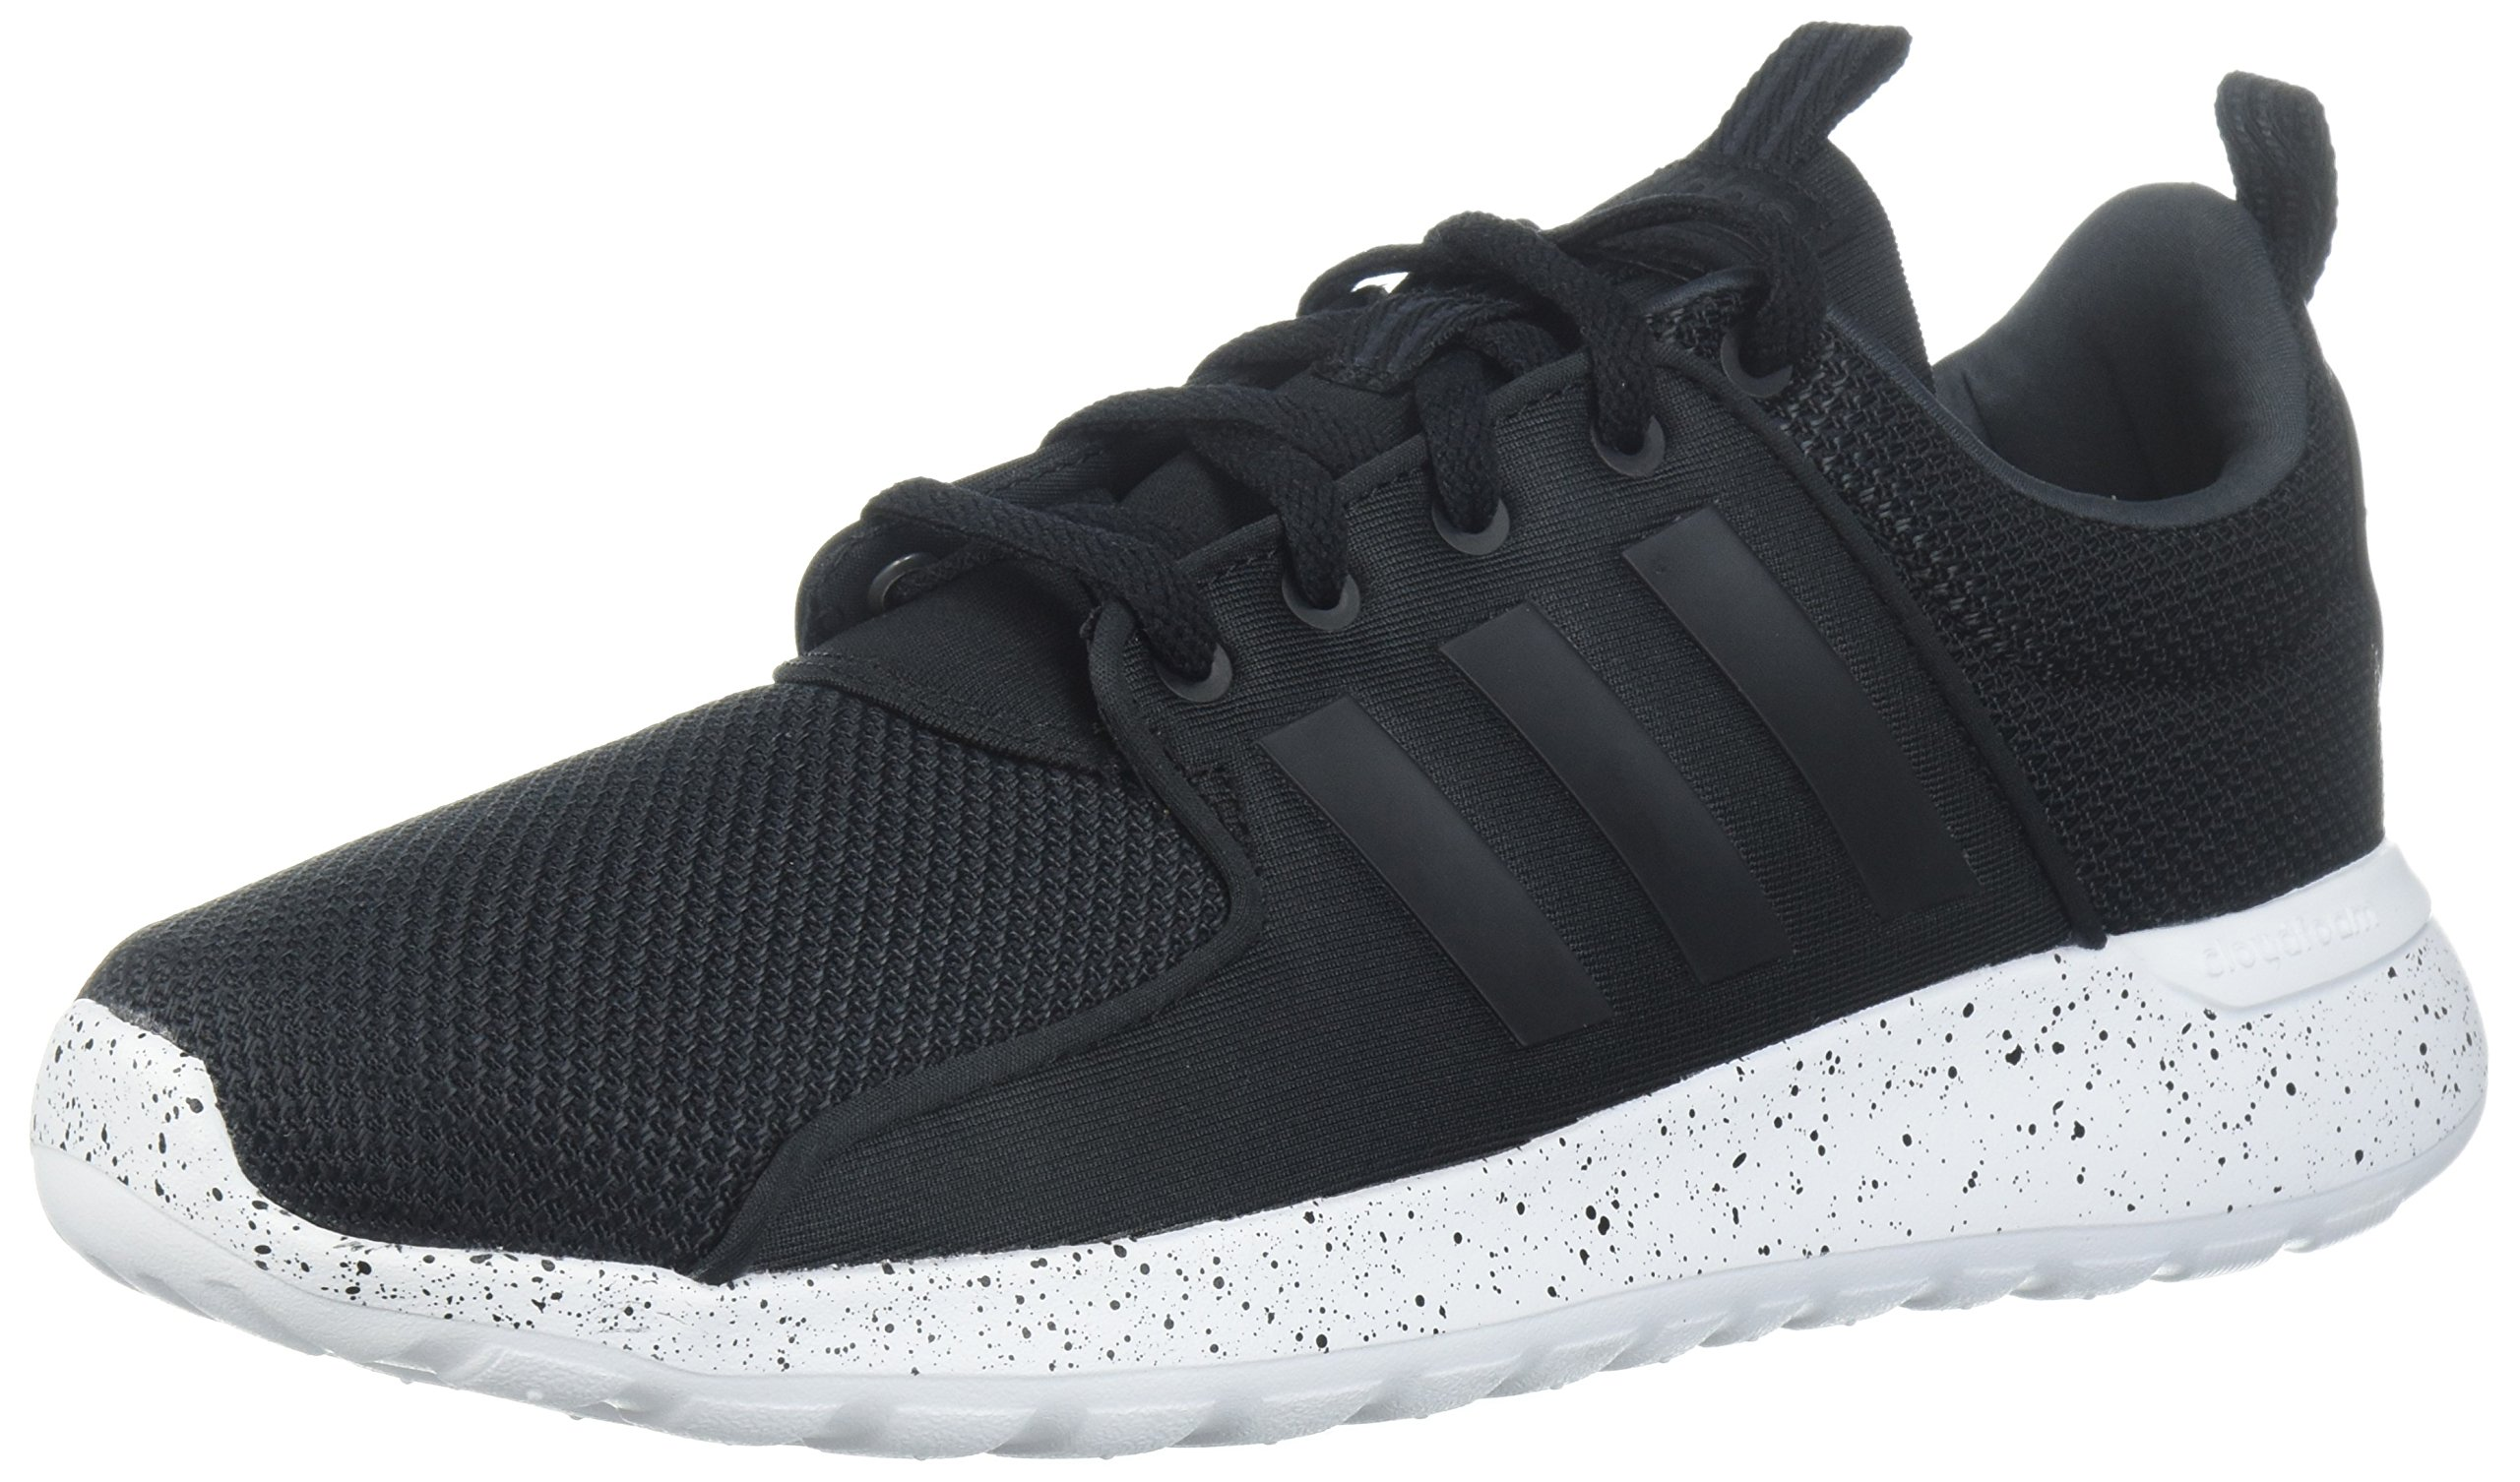 buy popular 4ea89 c1dad Galleon - Adidas Performance NEO Men s CF Lite Racer Running Shoe,core Black carbon white,11.5  M US